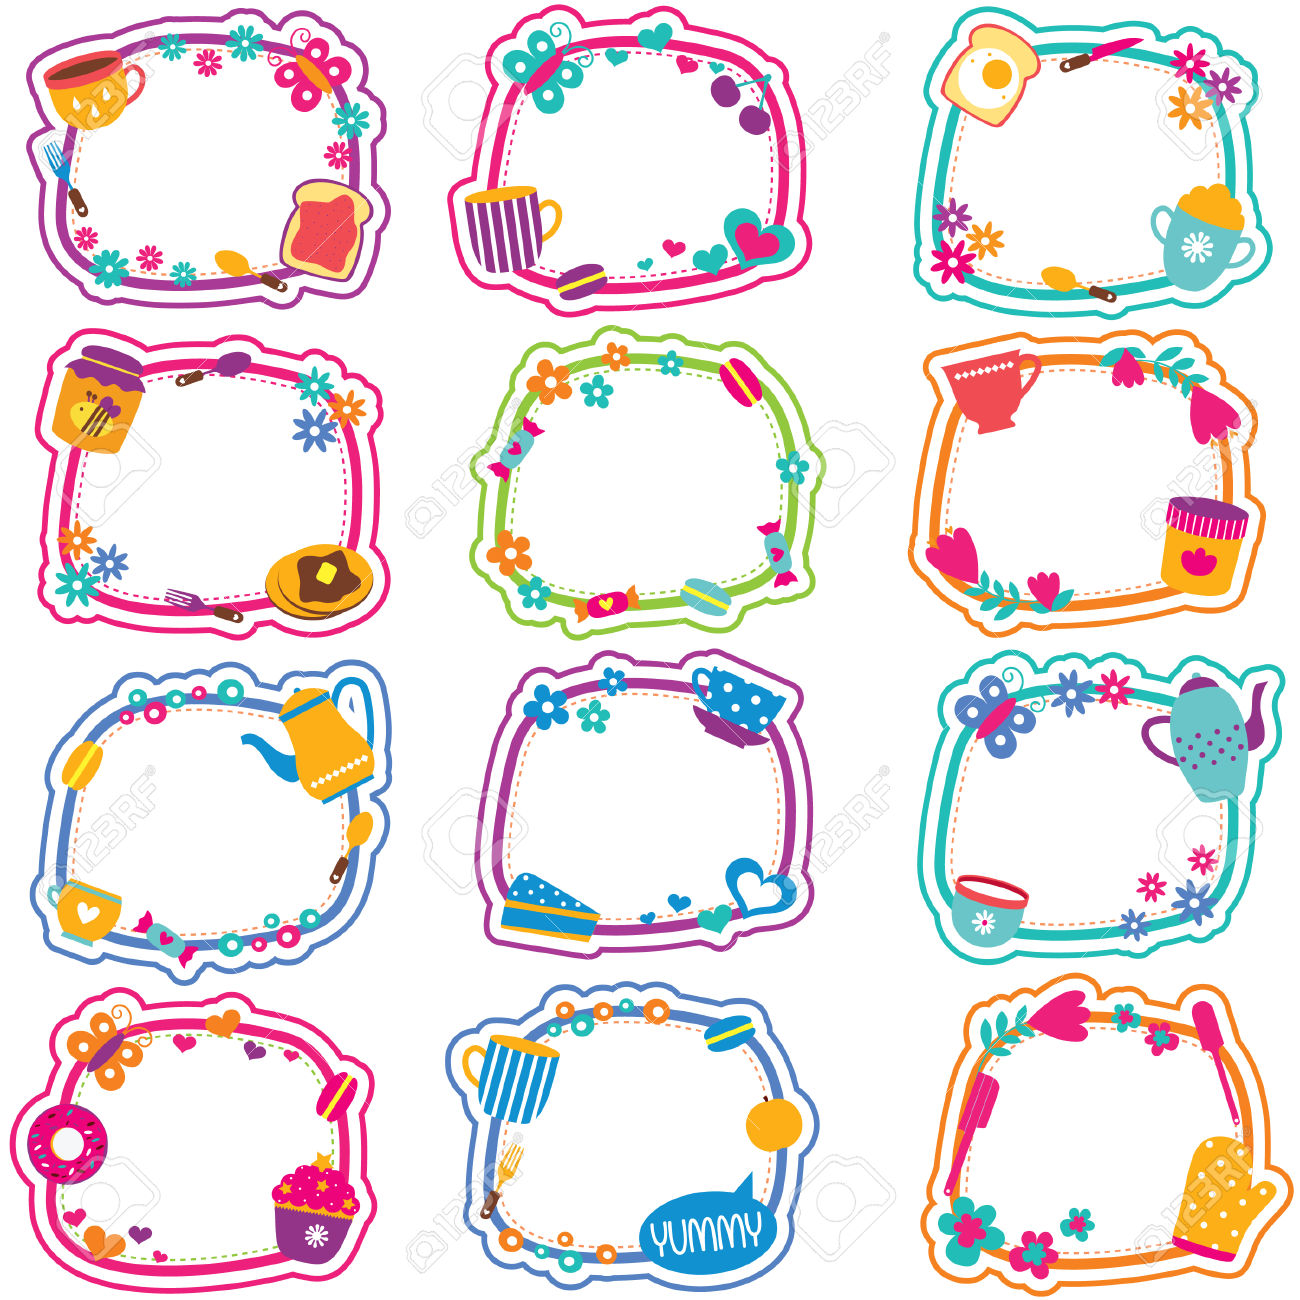 Tea Time Frames Clip Art Set Royalty Free Cliparts, Vectors, And.